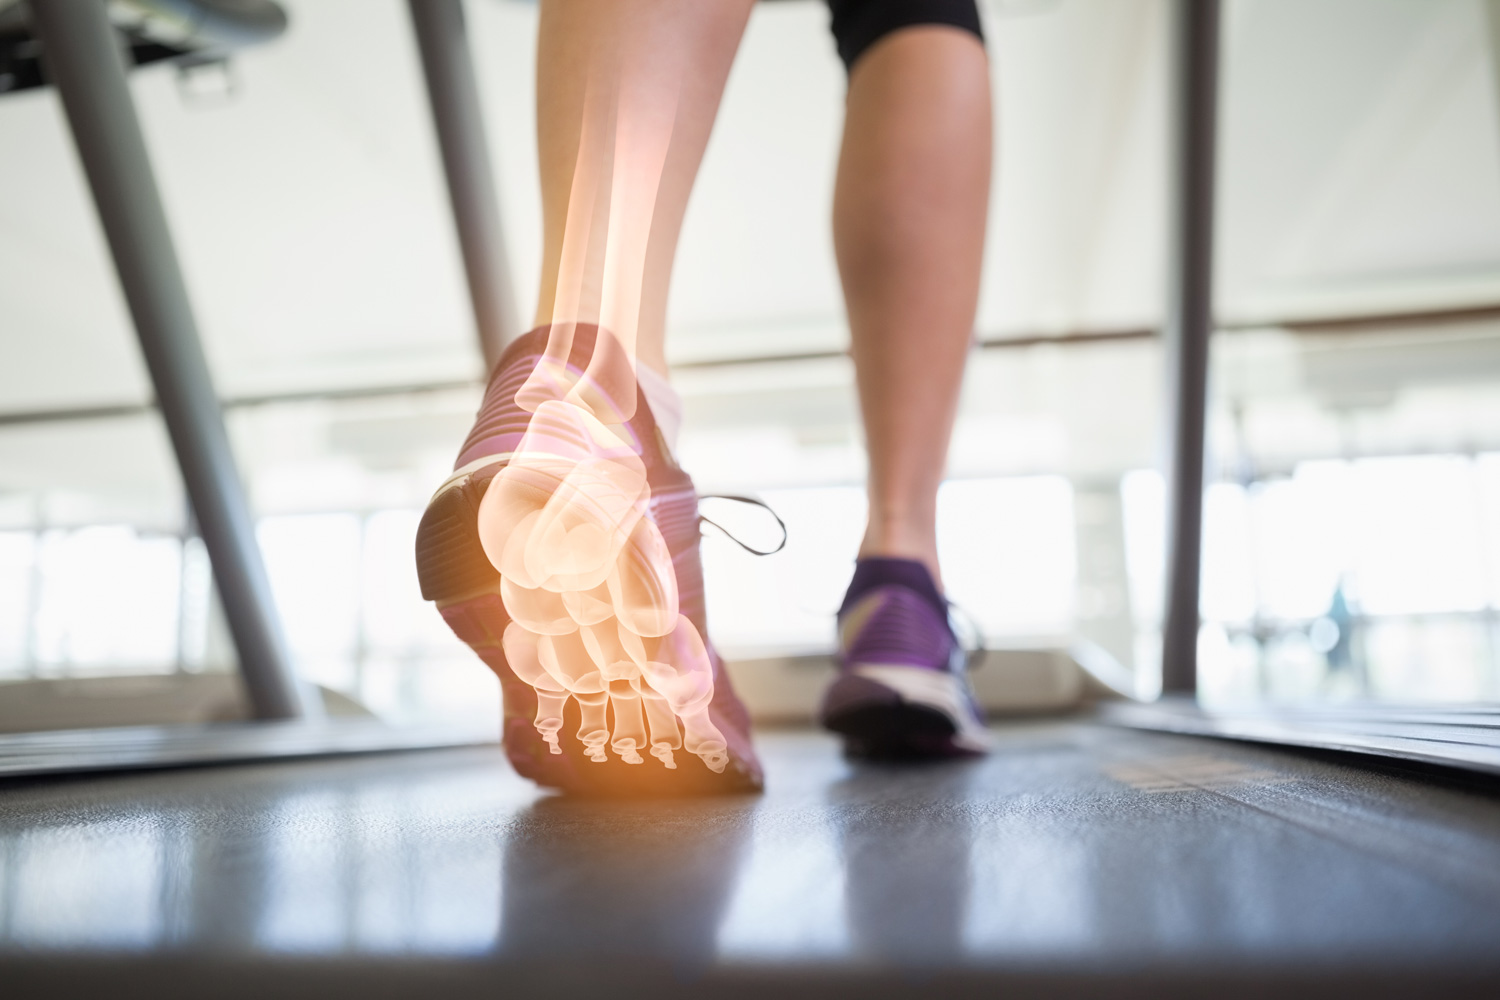 Skeleton structures in foot highlighted over someone walking on a machine